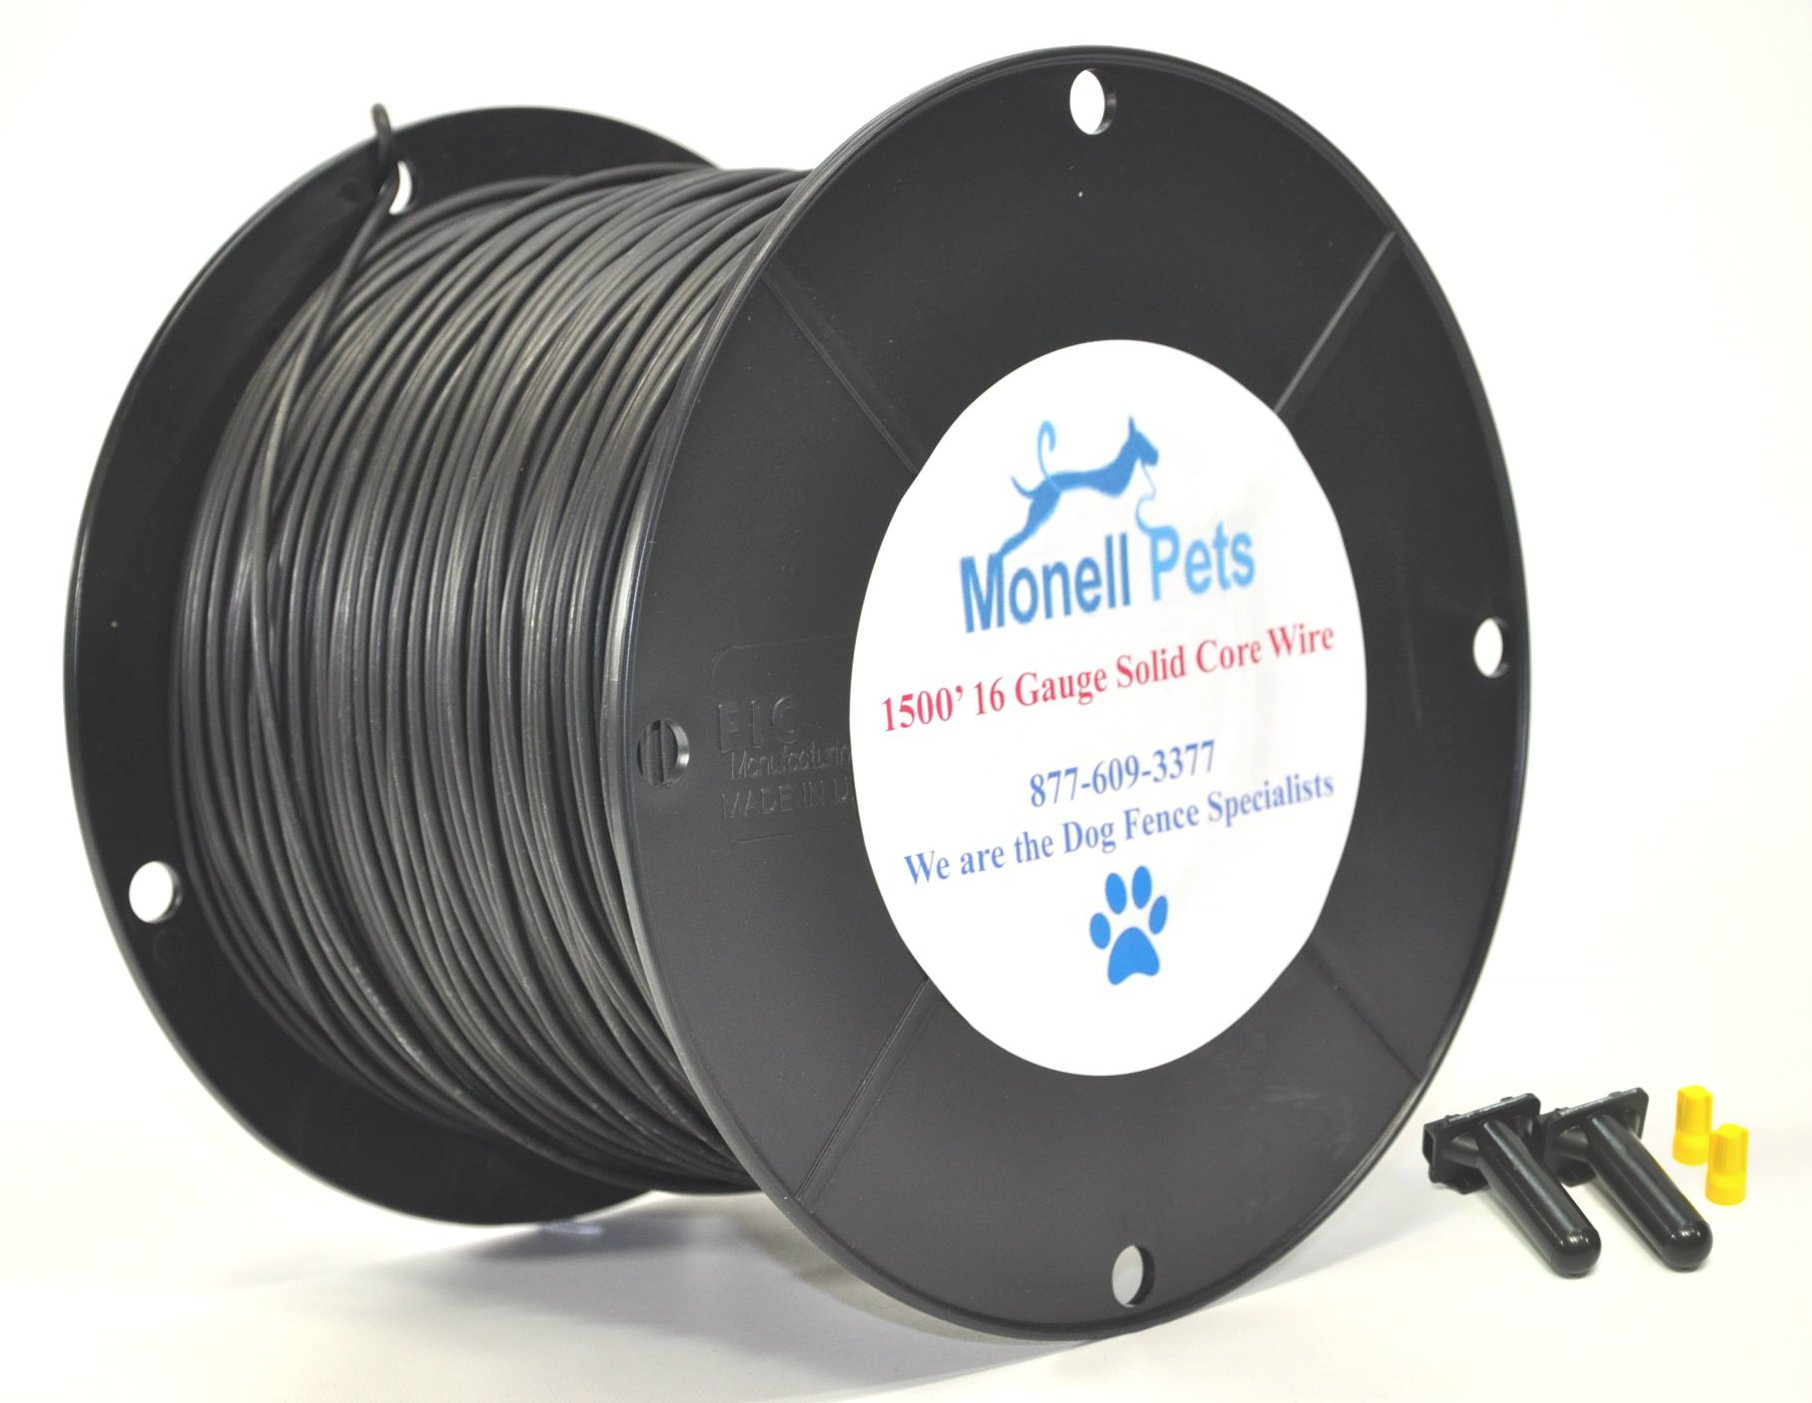 16 Gauge Heavy Duty Superior Pro Dog Fence Wire 1500 Ft Continuous Wire by Monell Pets